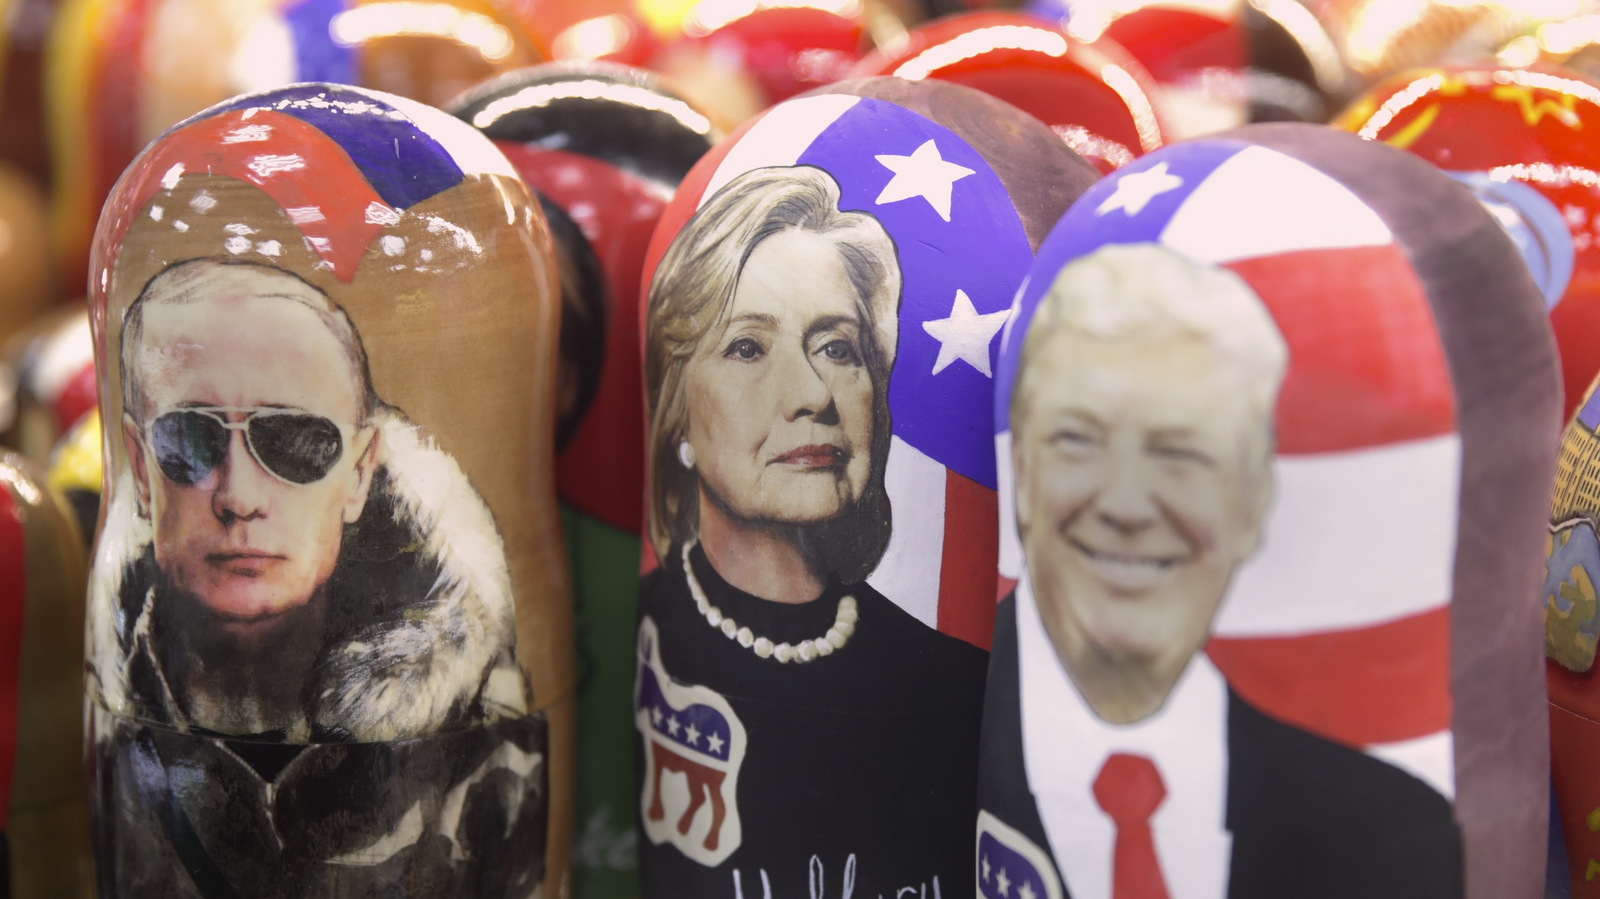 Traditional Russian Matreskas depicting Vladimir Putin, Hillary Clinton and Donald Trump displayed in a shop in Moscow. Nov. 8, 2016. (AP/Pavel Golovkin)